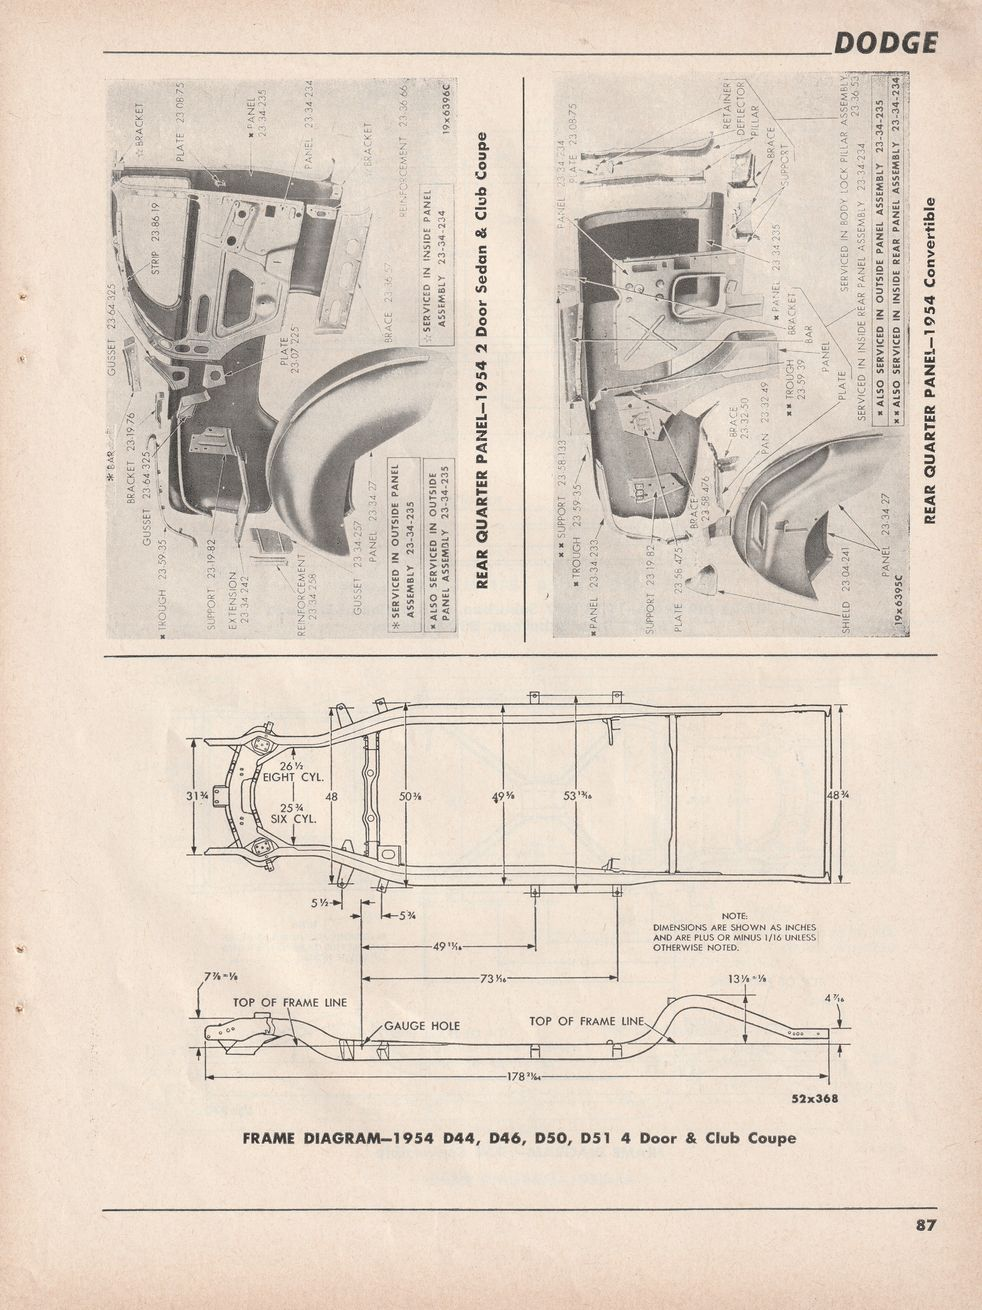 Viewing A Thread 1954 58 Dodge Frame Dimensions Starting Circuit Diagram For The Hudson Wasp